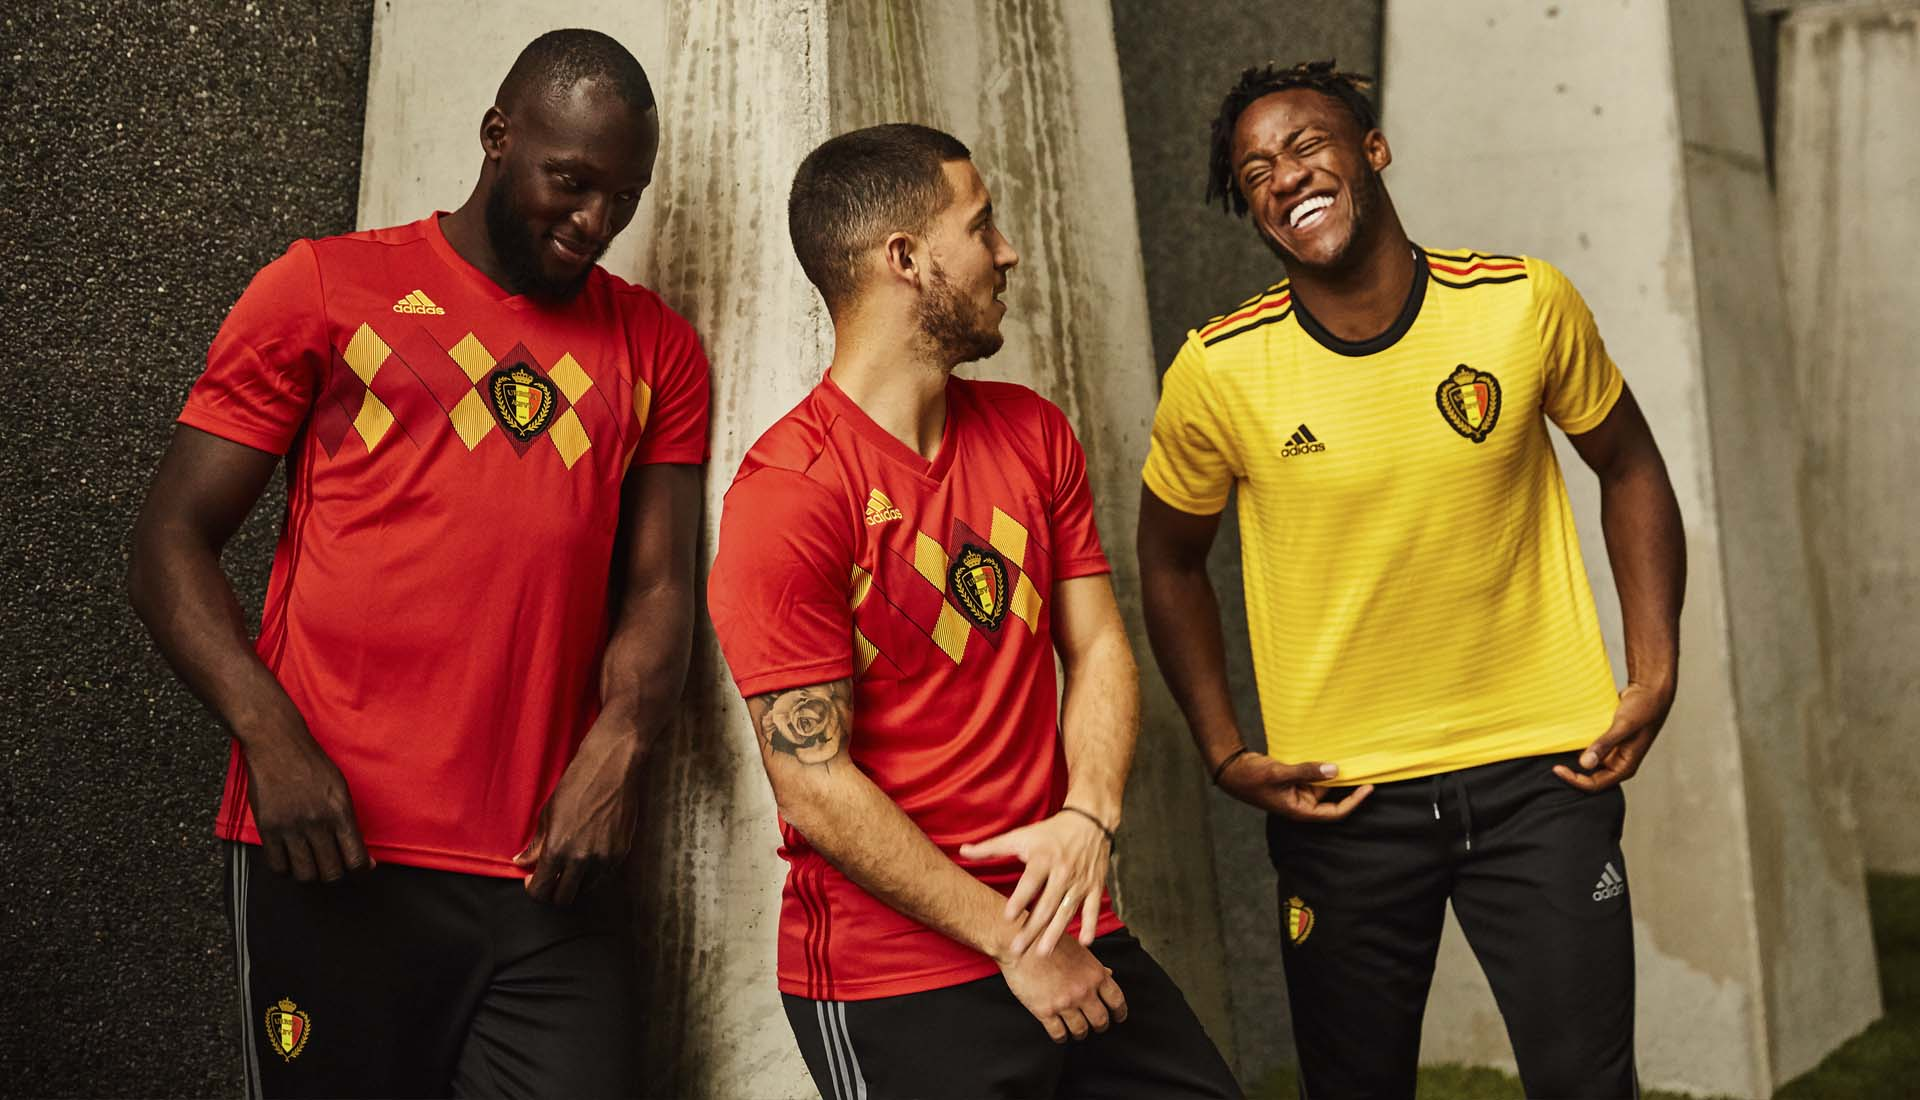 2-belgium-world-cup-2018-away-shirt.jpg